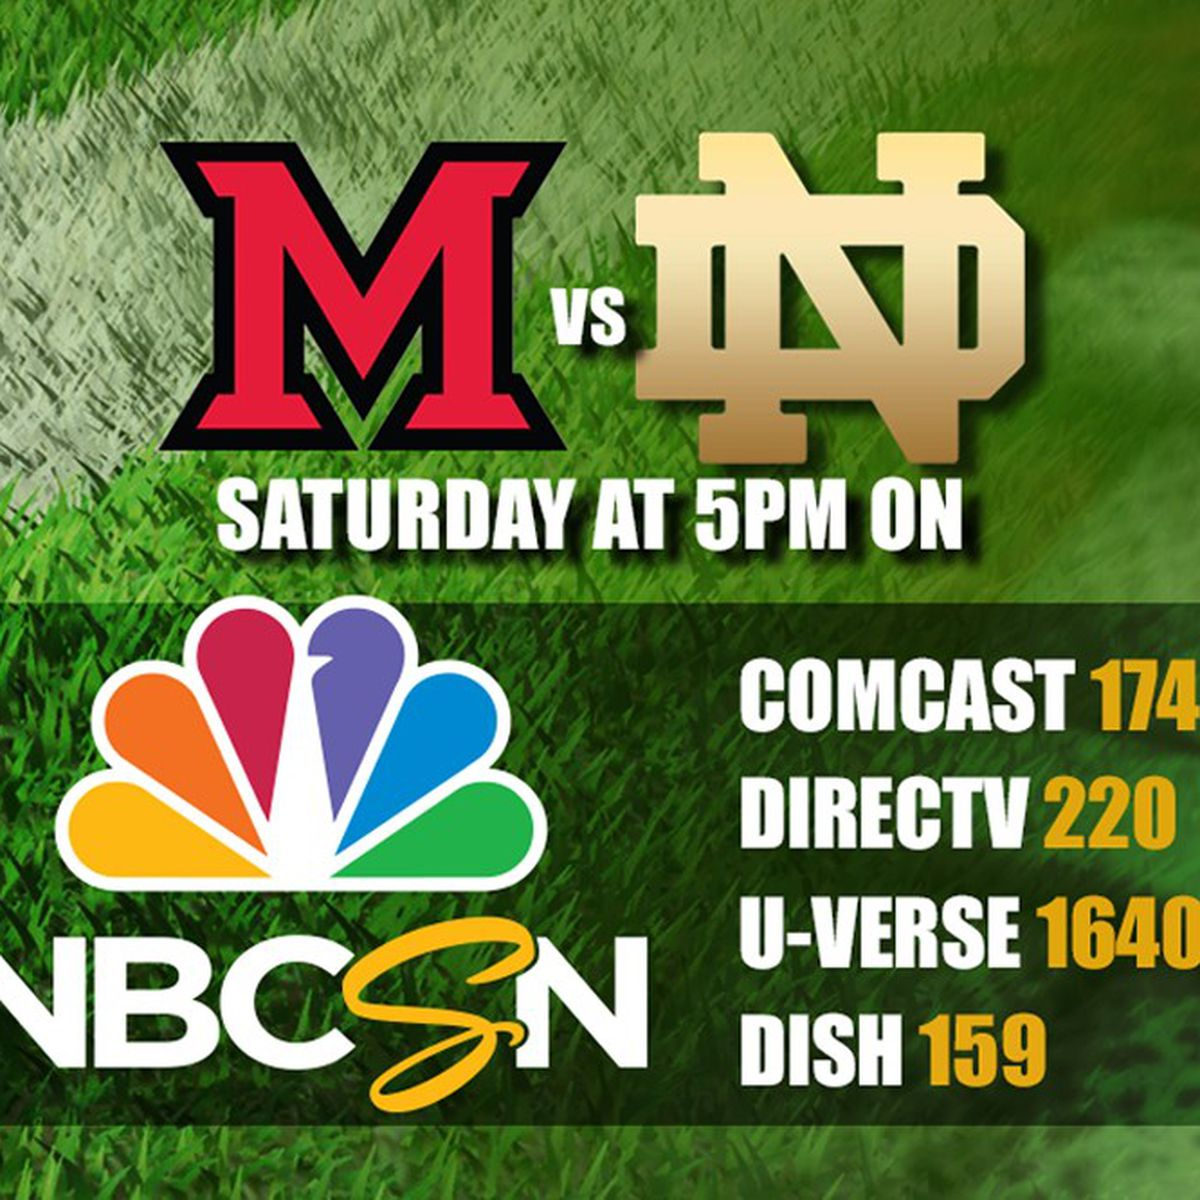 Notre Dame Vs Miami Ohio Game Saturday To Air On Nbcsn Not Wndu